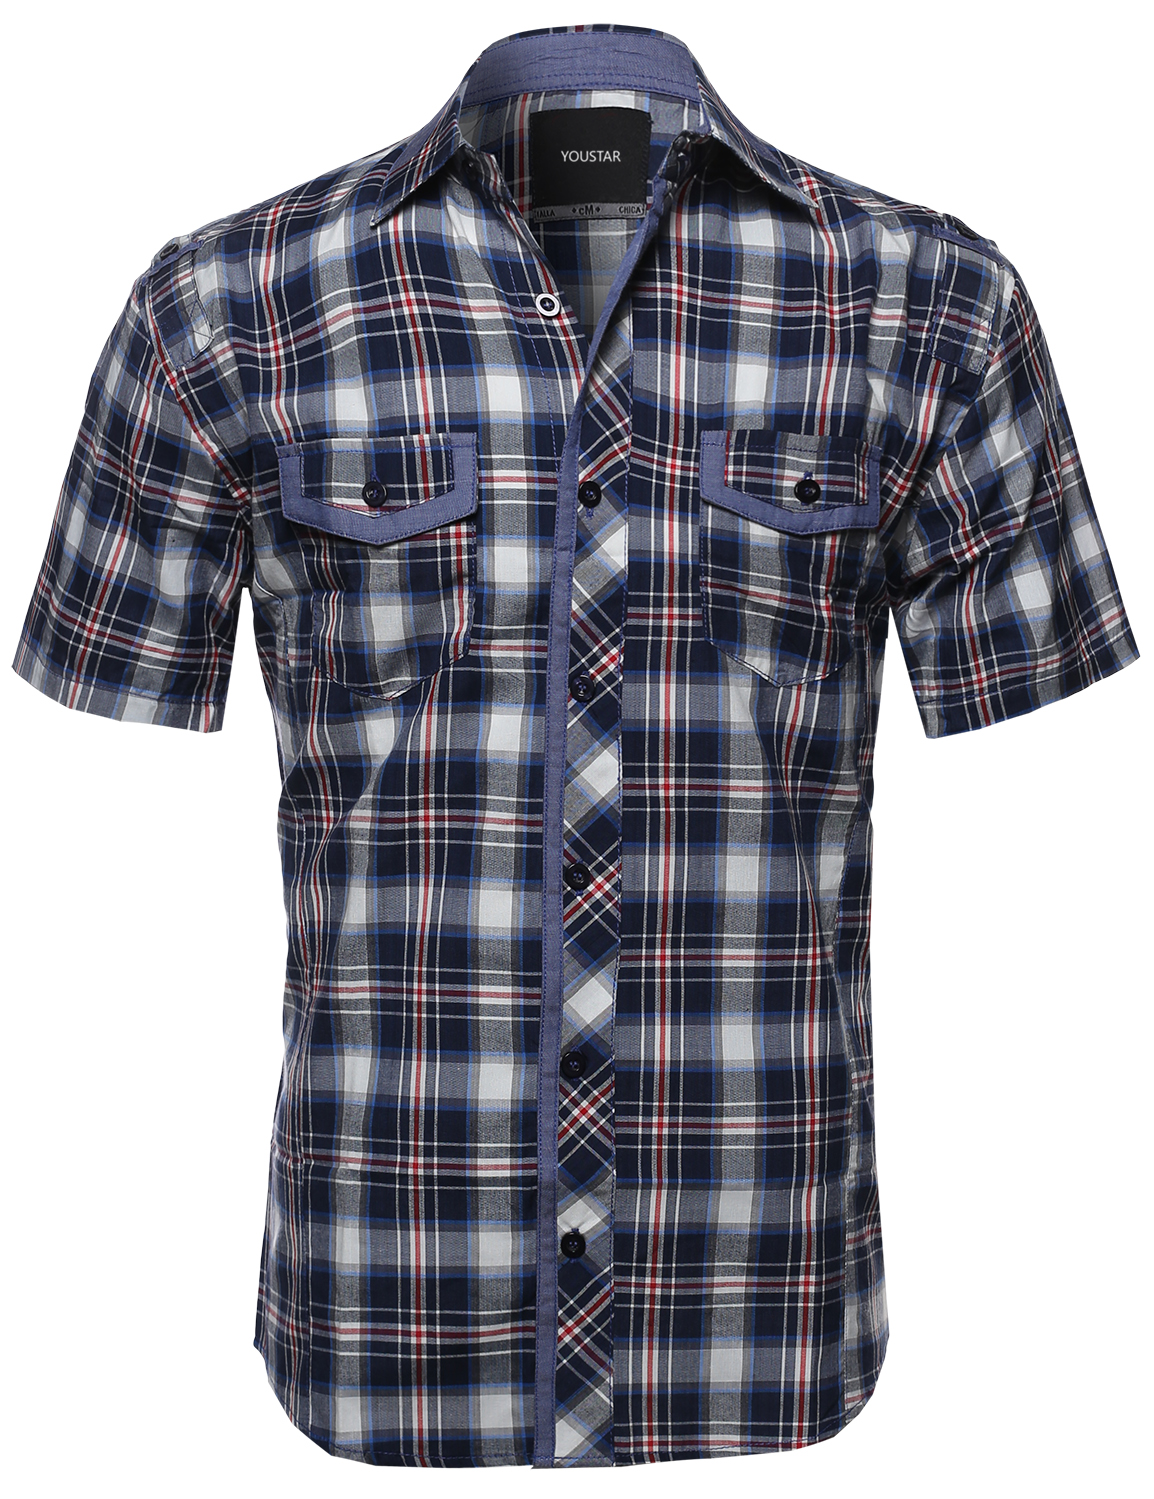 Fashionoutfit men 39 s casual short sleeve cotton plaid for Women s short sleeve button down cotton shirts